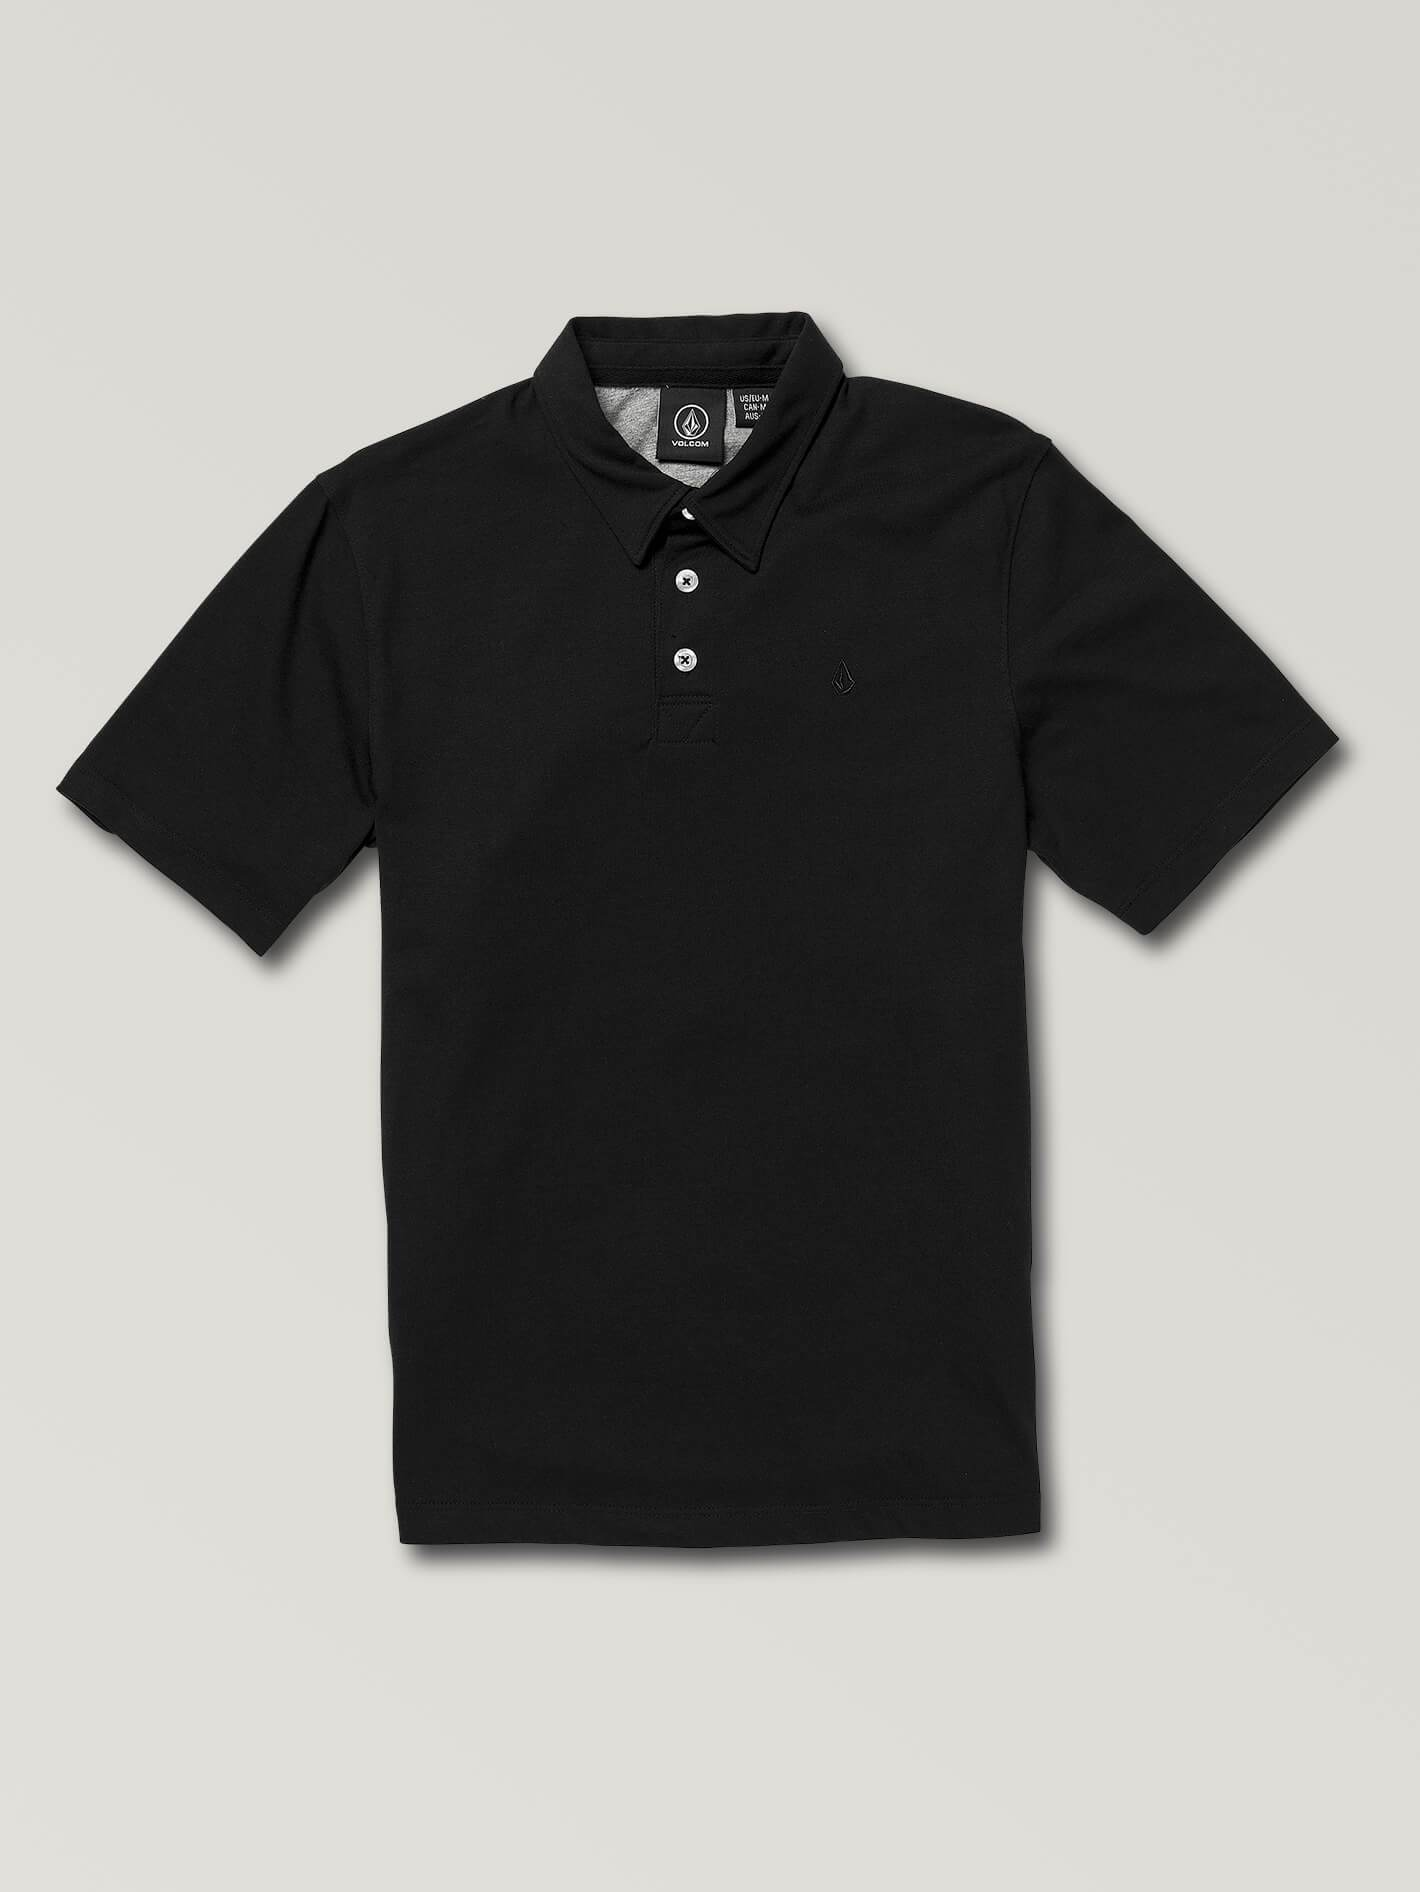 Big Boys Wowzer Polo - Black - BLACK / S